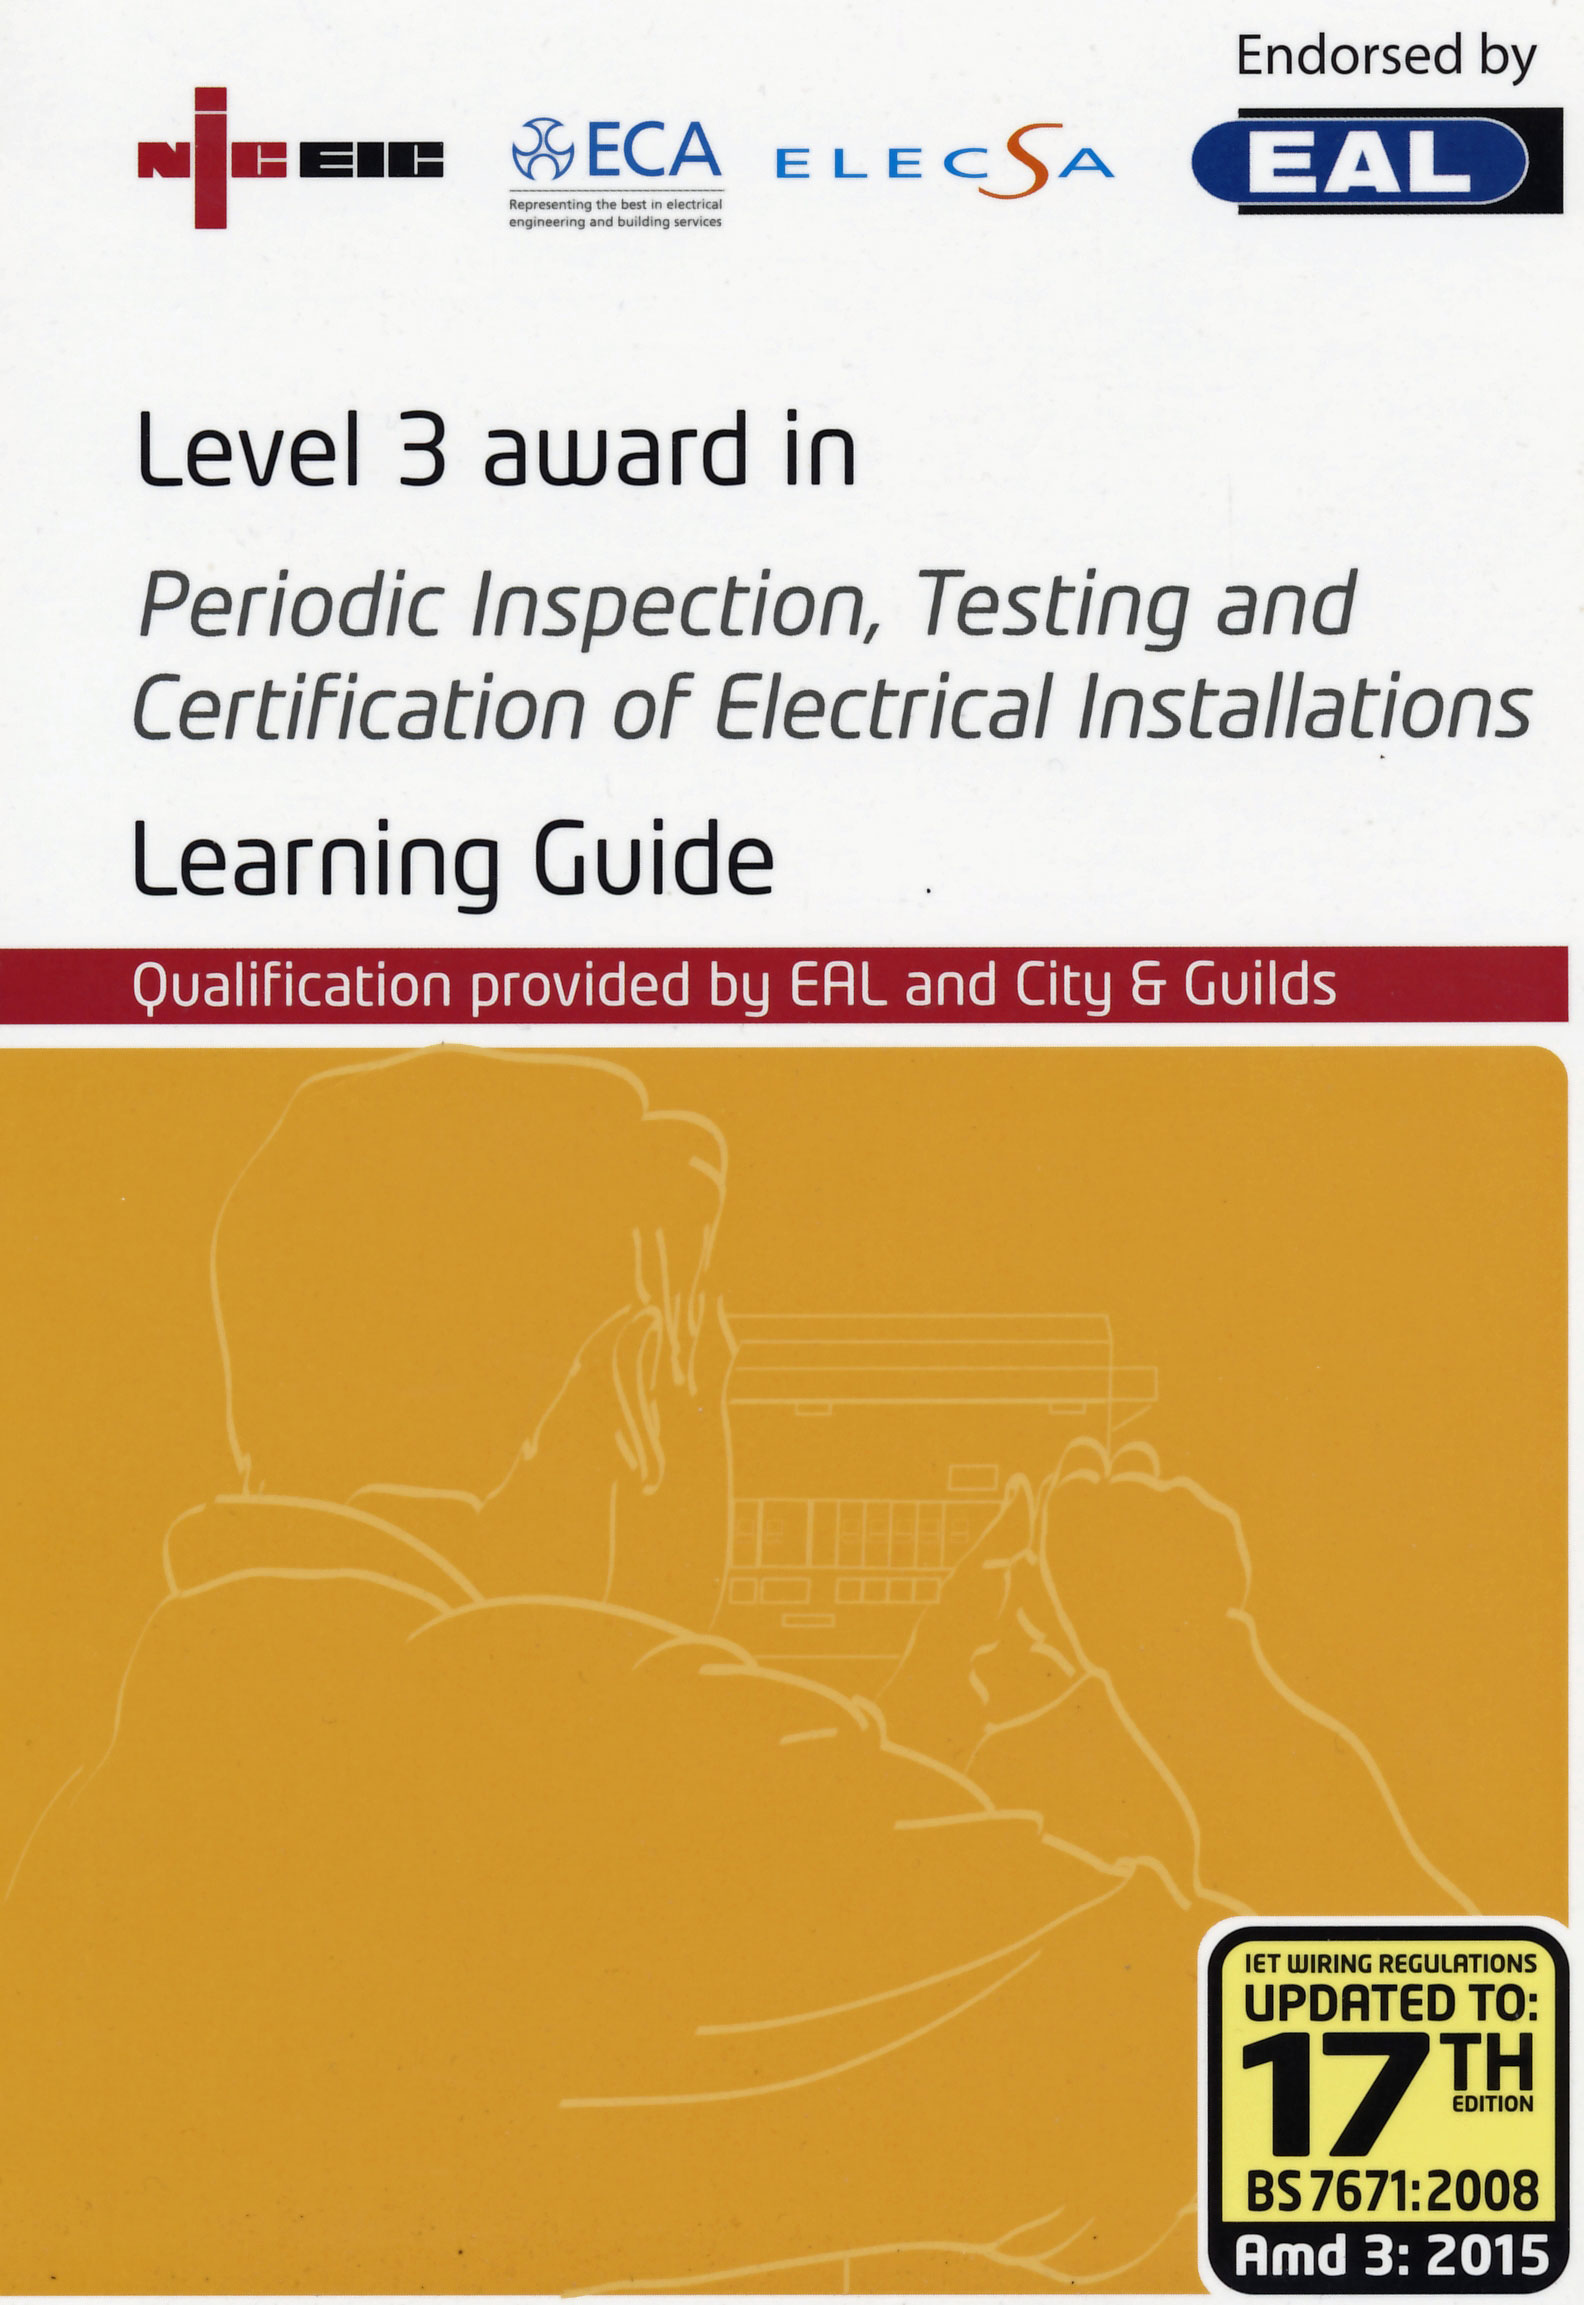 City Guilds 2391 51 Level 3 Award In The Periodic Inspection Iet Wiring Regulations 17th Edition Book Course Is Designed To Verify That Candidates Are Fully Familiar With Content And Application Of Guidance Note Published By